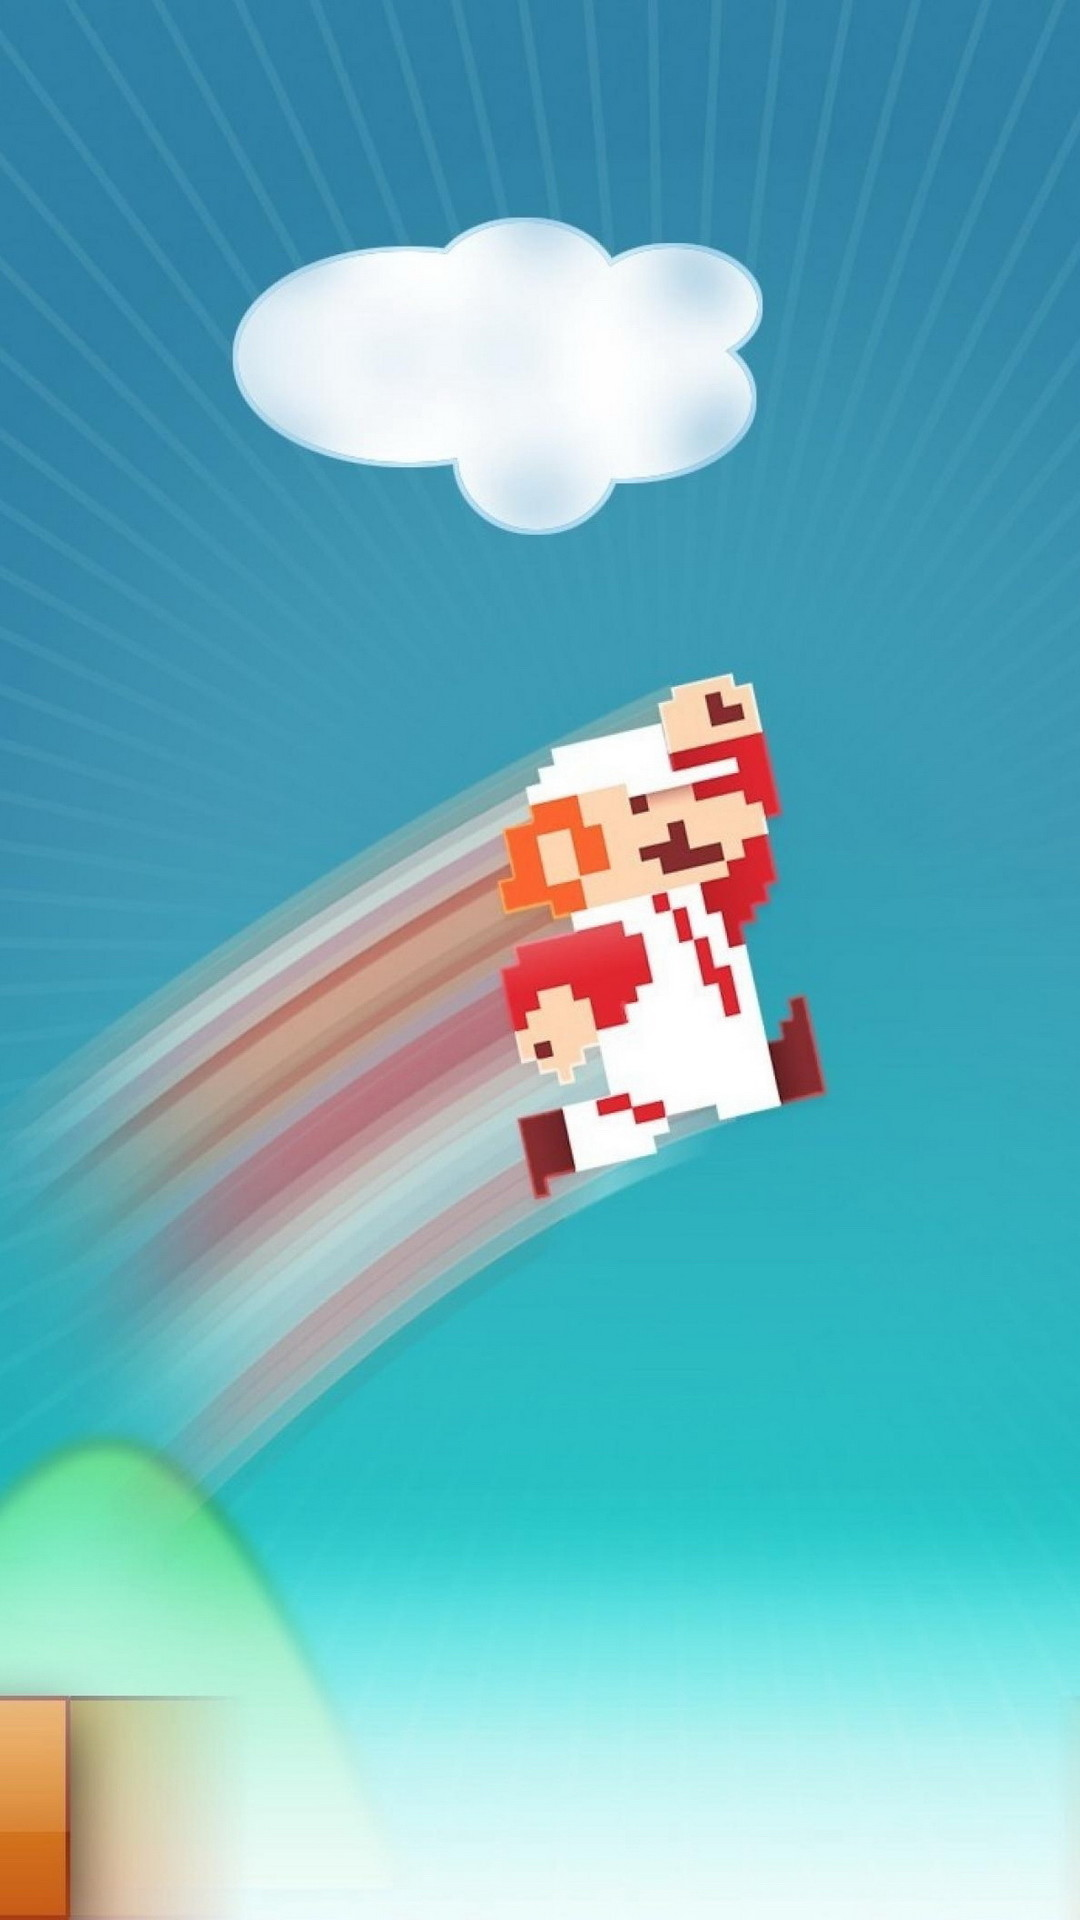 Super Mario ☆ Find more nerdy #iPhone + #Android #Wallpapers and # Backgrounds